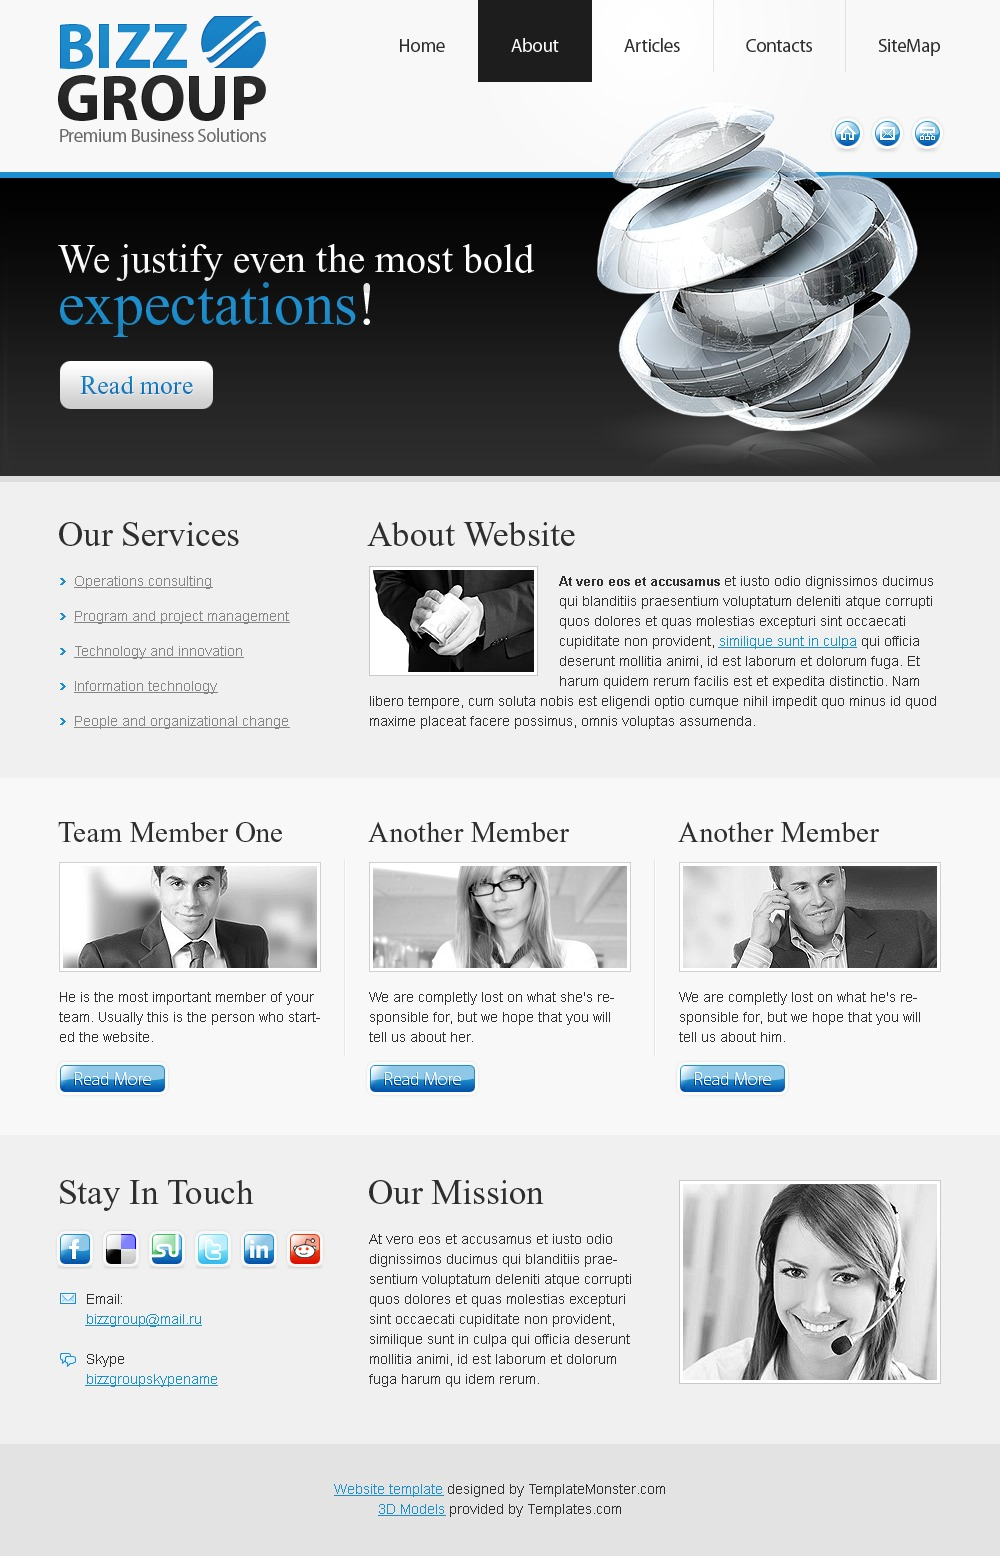 Free HTML Theme for a Business Site Website Template - screenshot